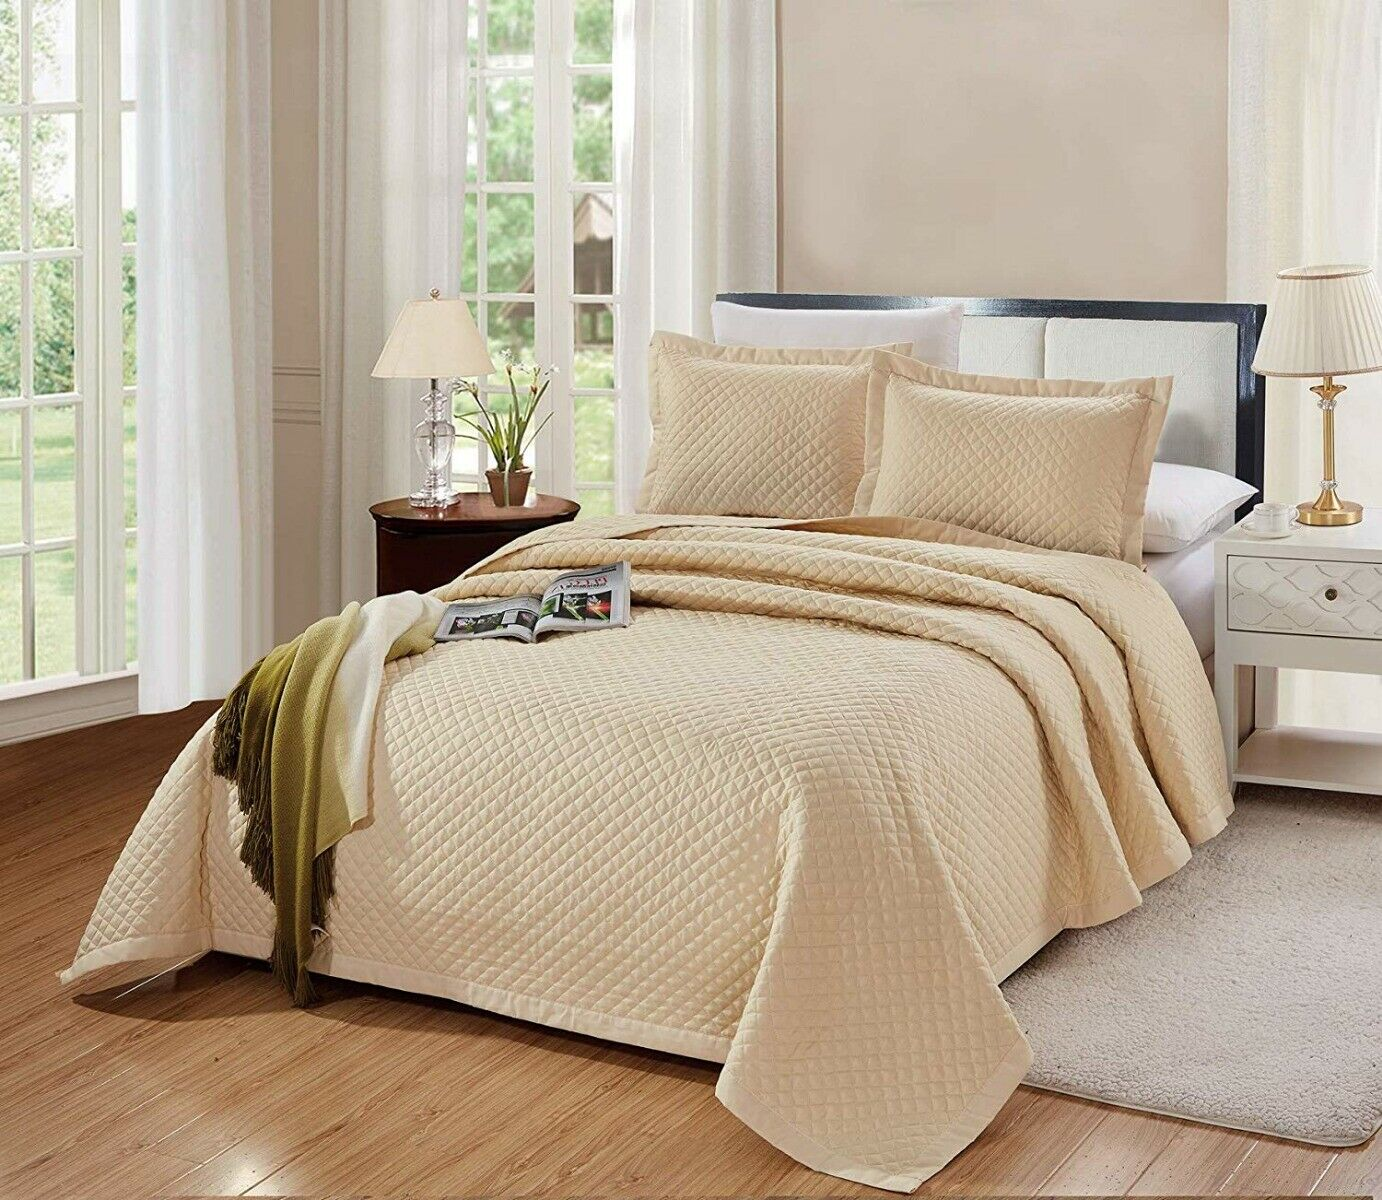 Queen   Full Size Naples Quilt Solid Light Taupe Bedspread Microfiber Coverlet